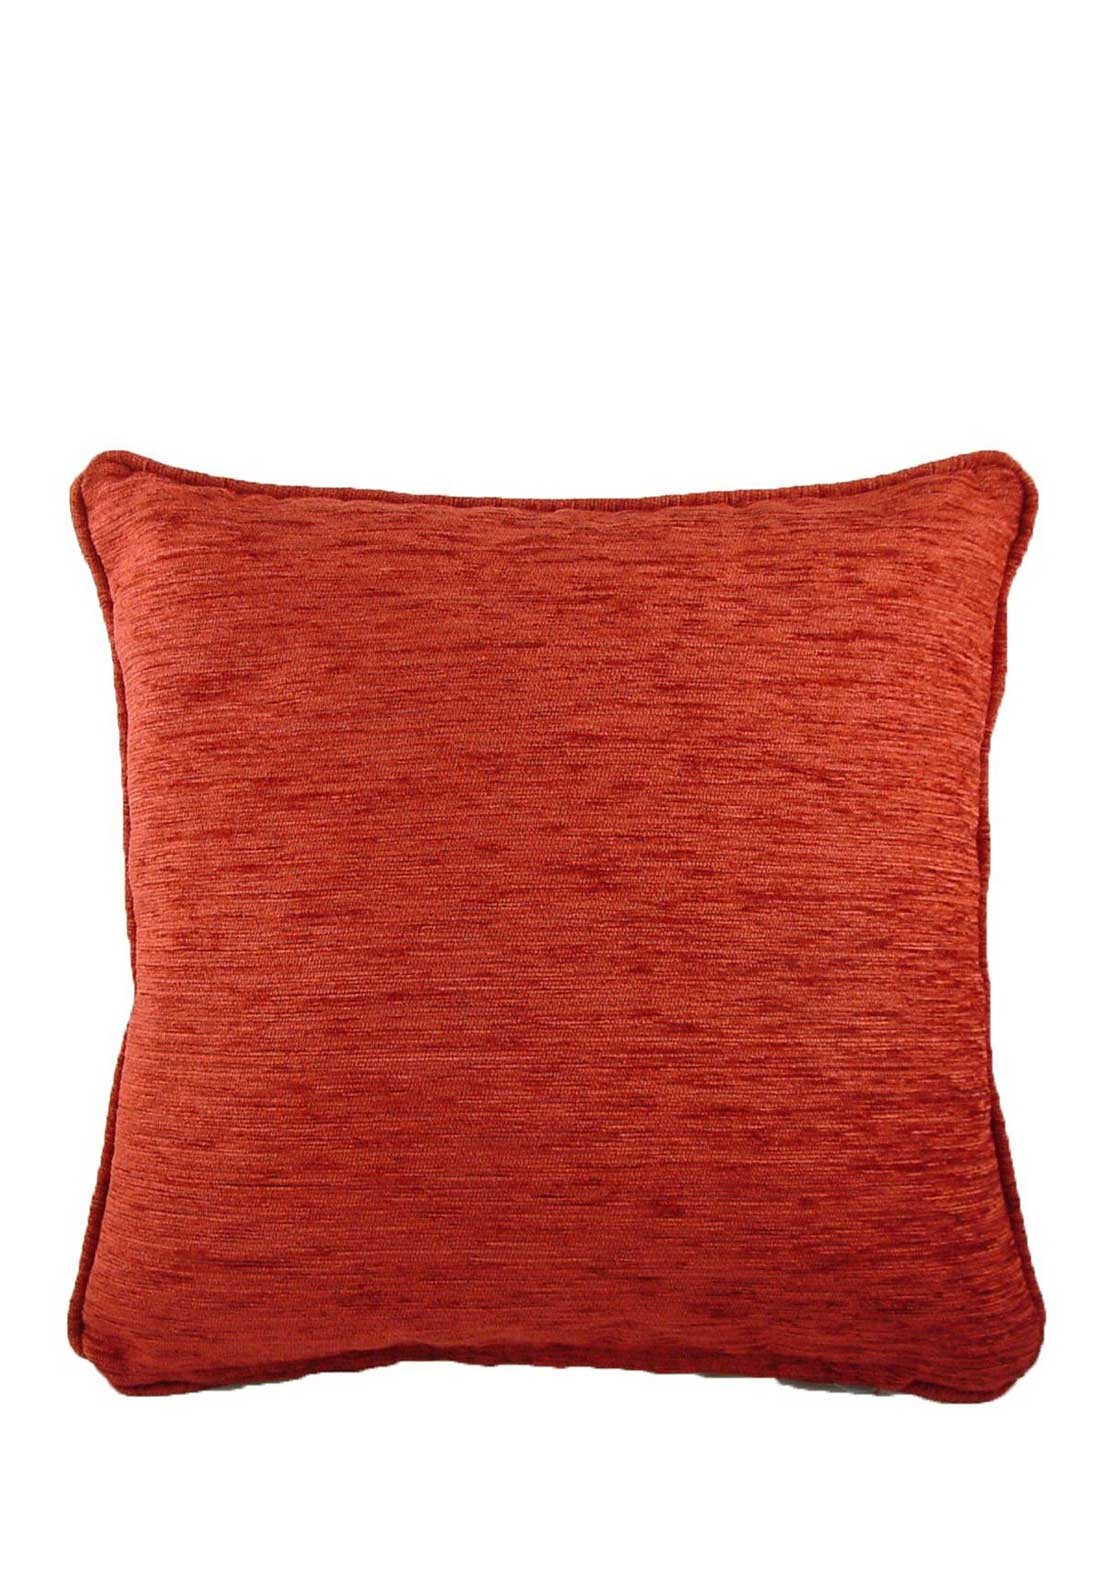 Savannah Chenille Cushion, 43 x 43cm, Terracotta